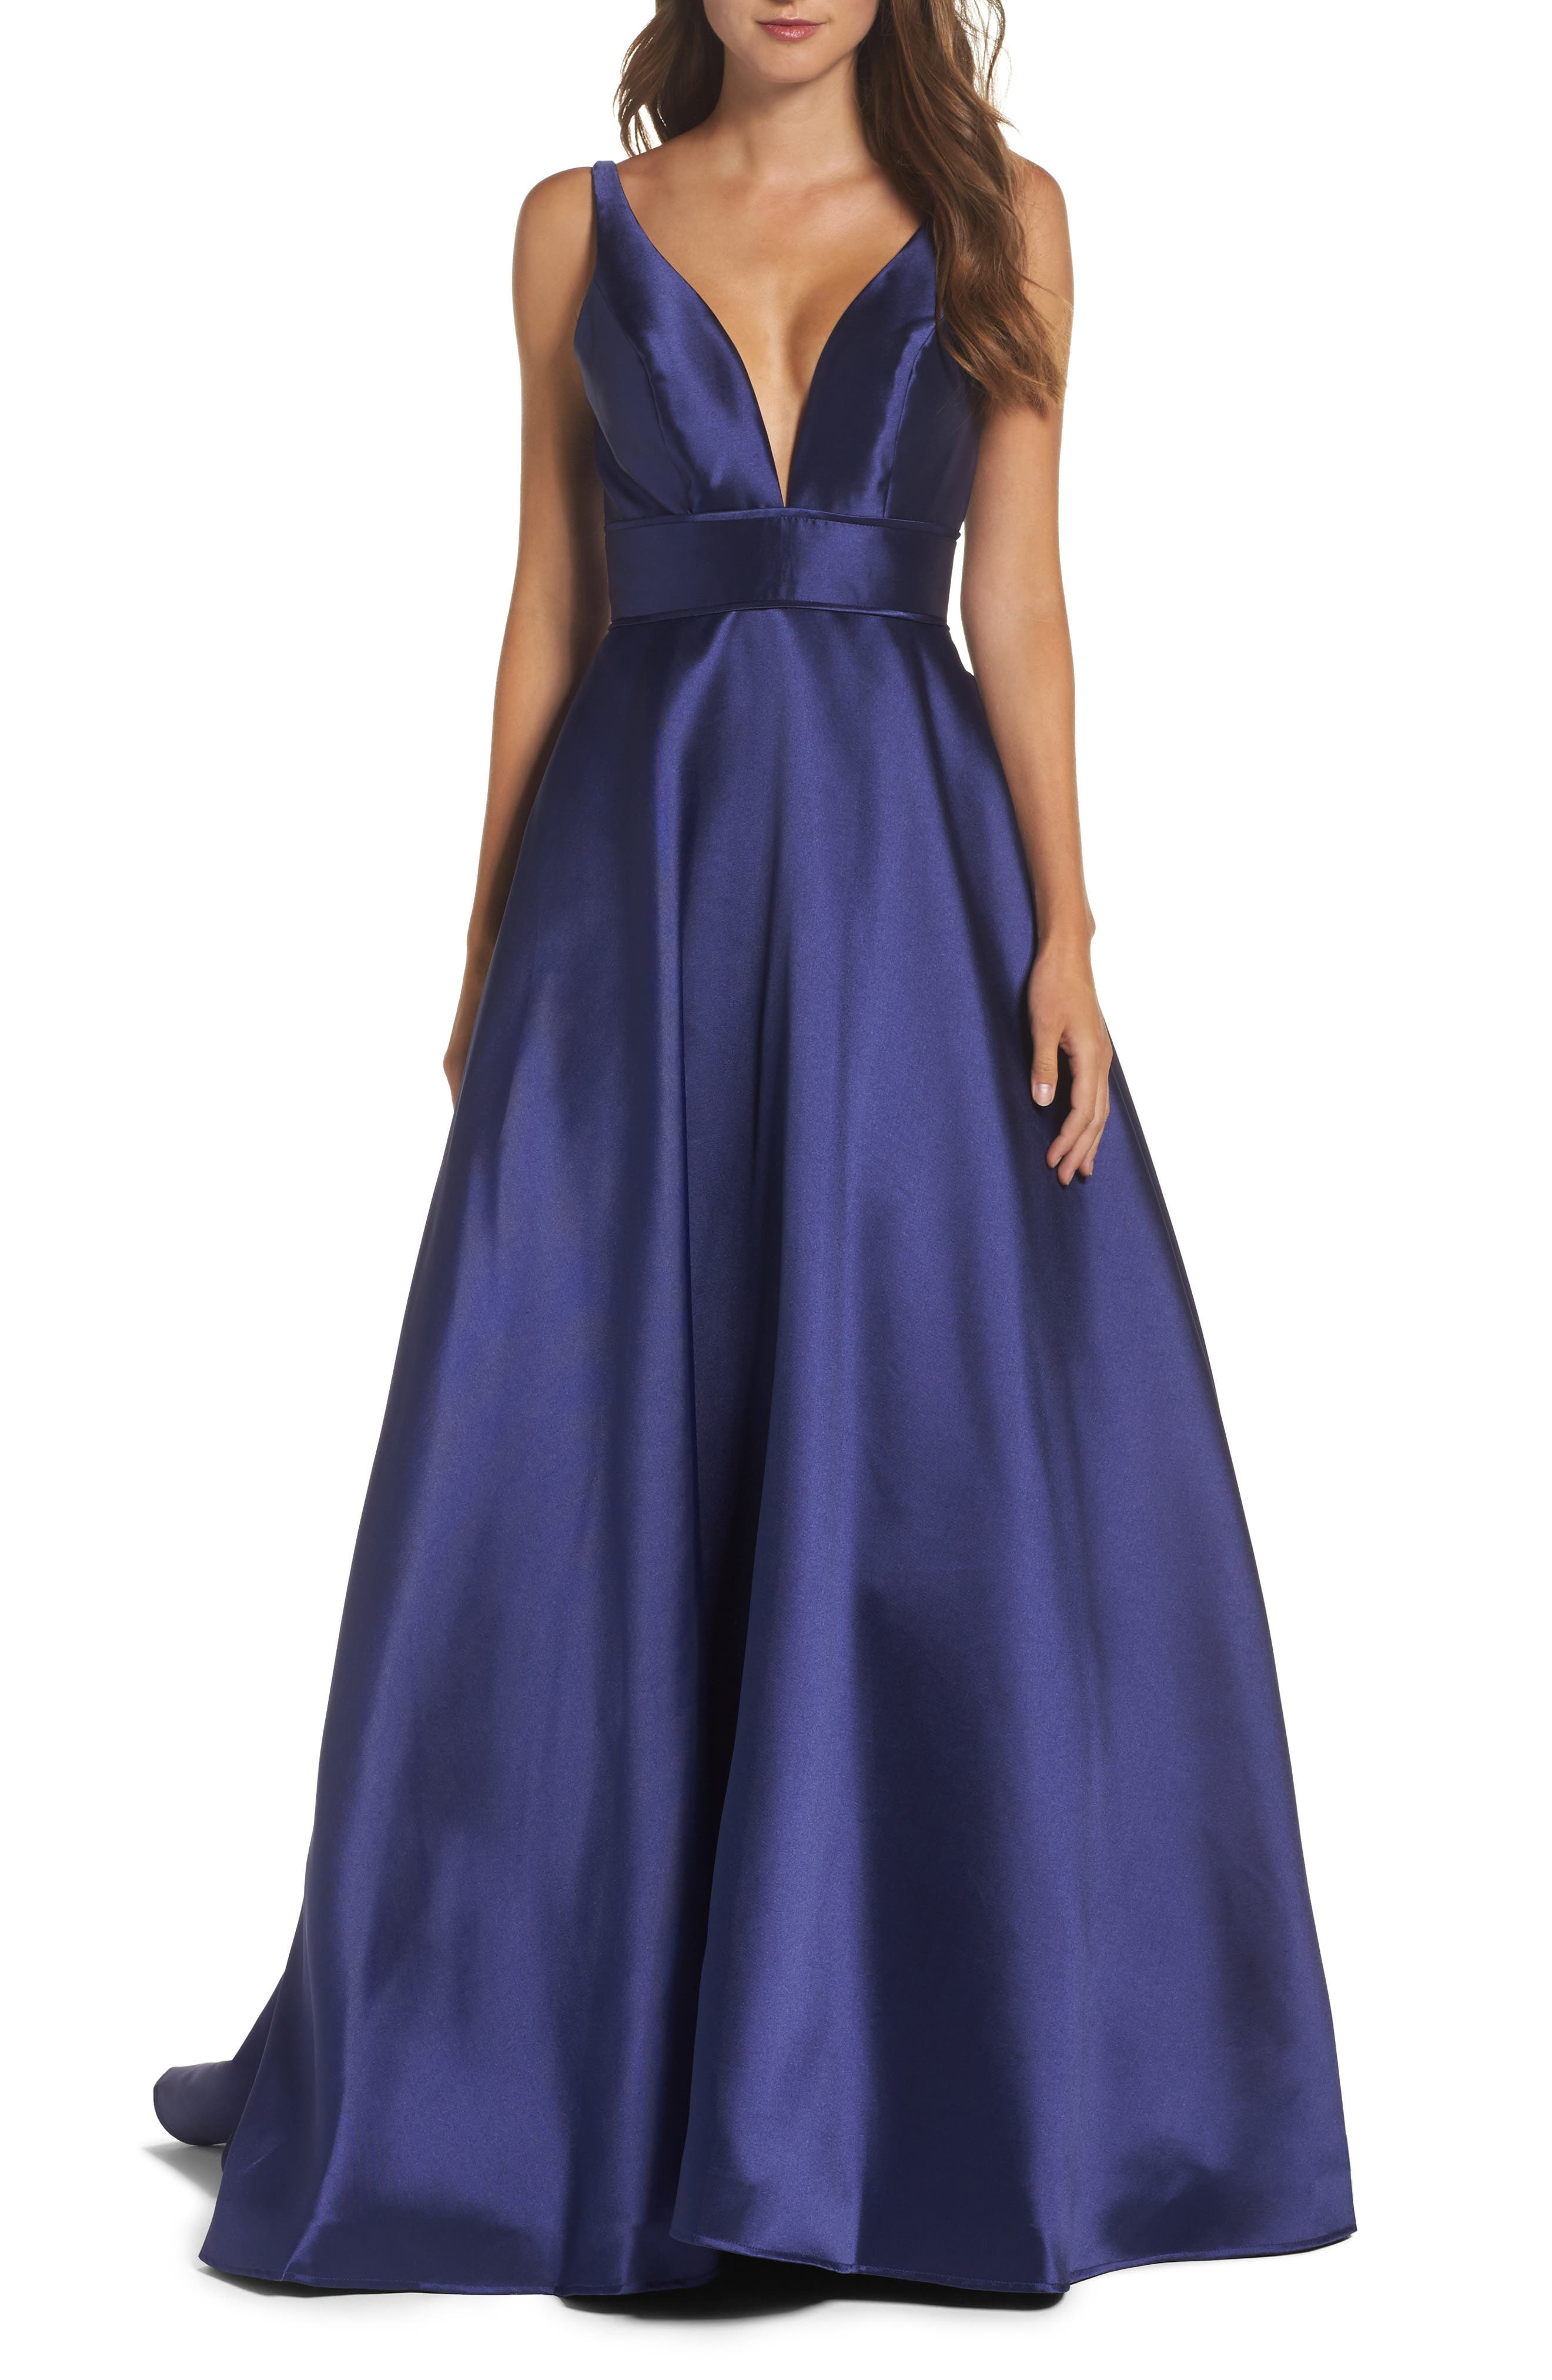 IEENA FOR MAC DUGGAL Plunging Sweetheart Neck Ballgown, Main, color, NAVY